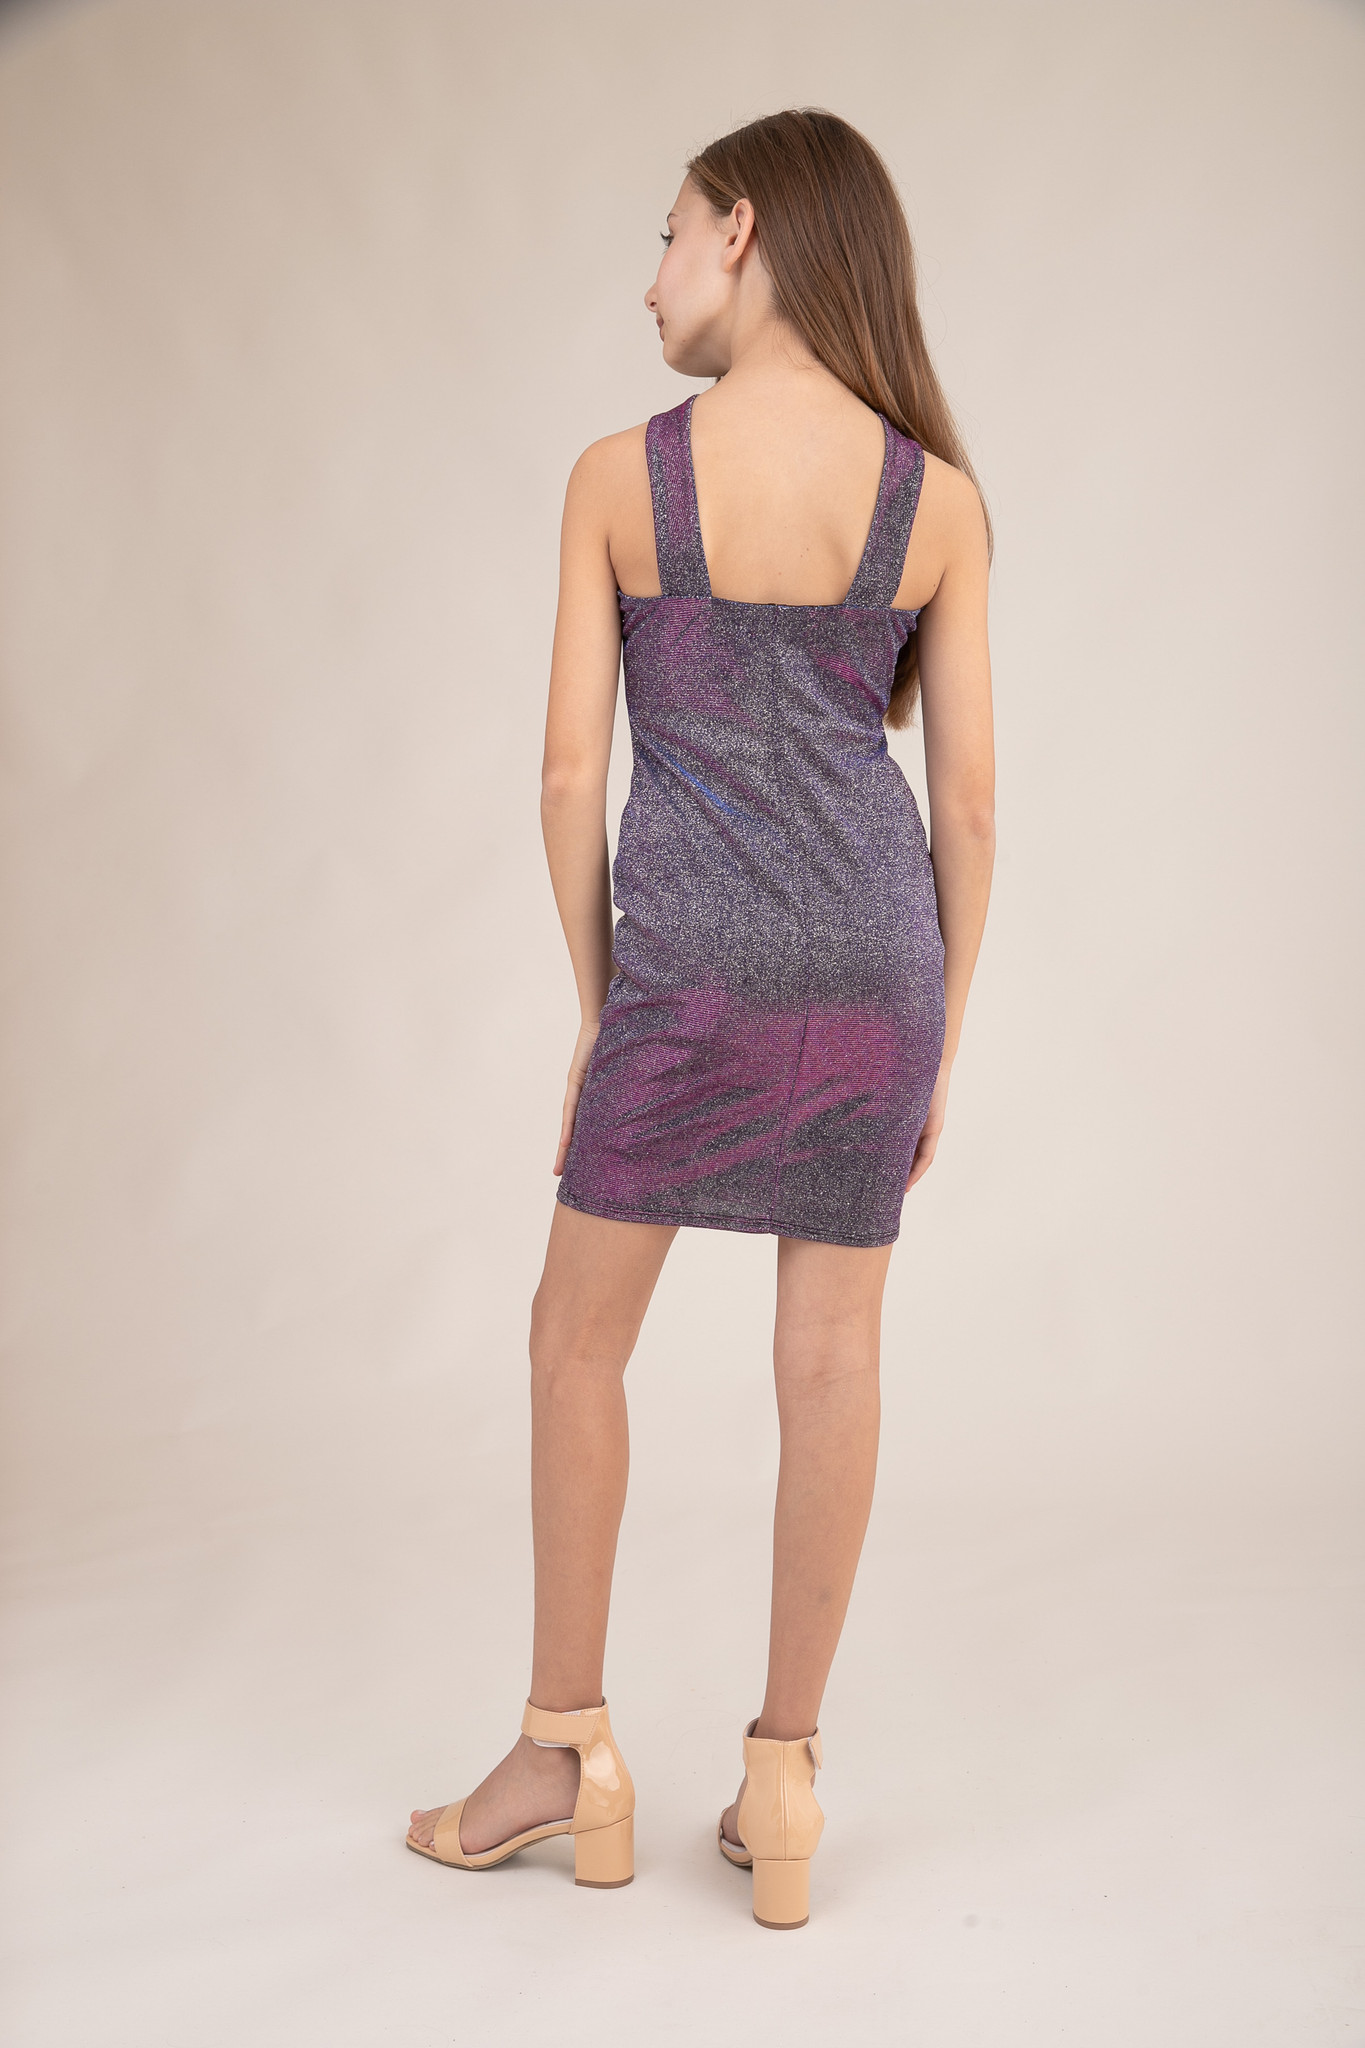 Tween Girls X-Front Fitted Purple Glitter Dress in Longer Length back.